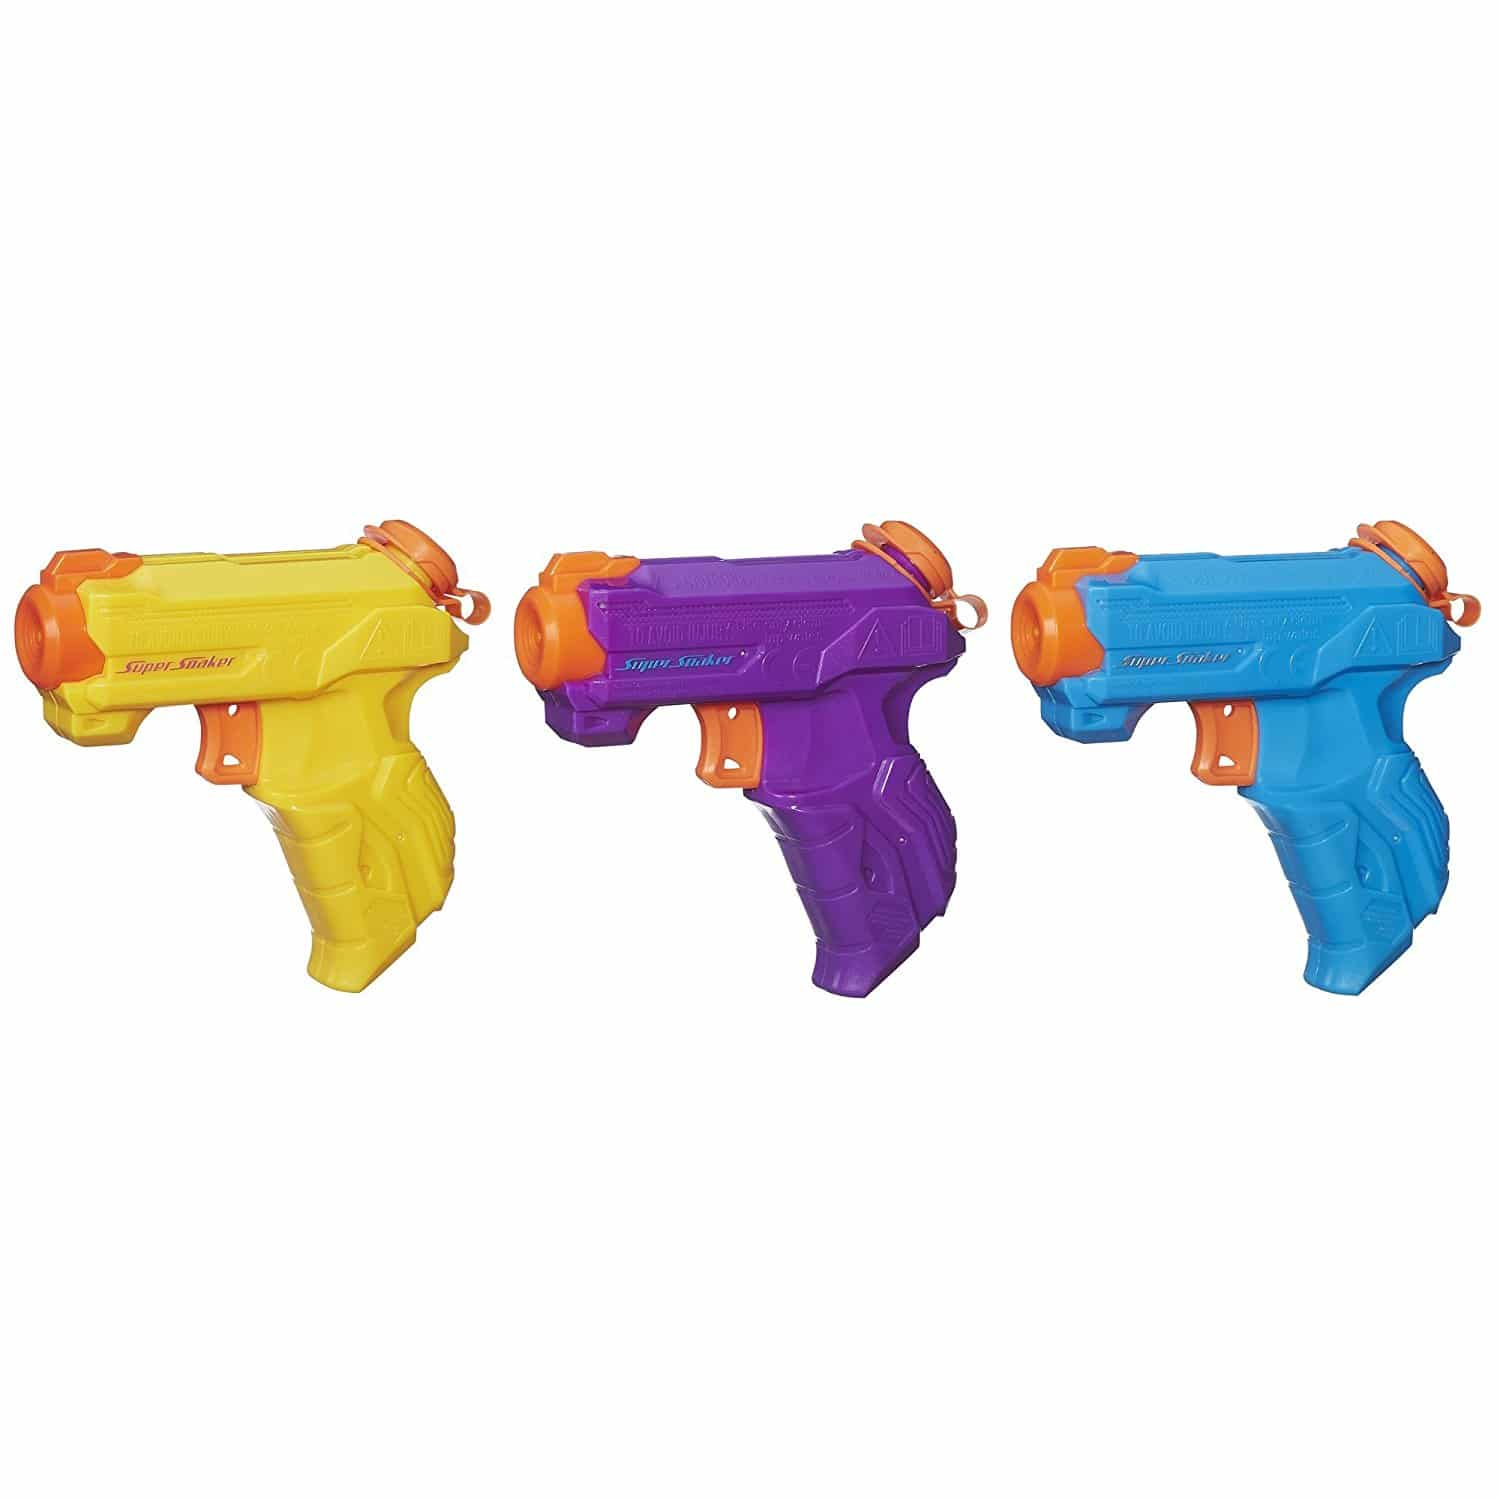 Nerf Super Soaker Zipfire Pack